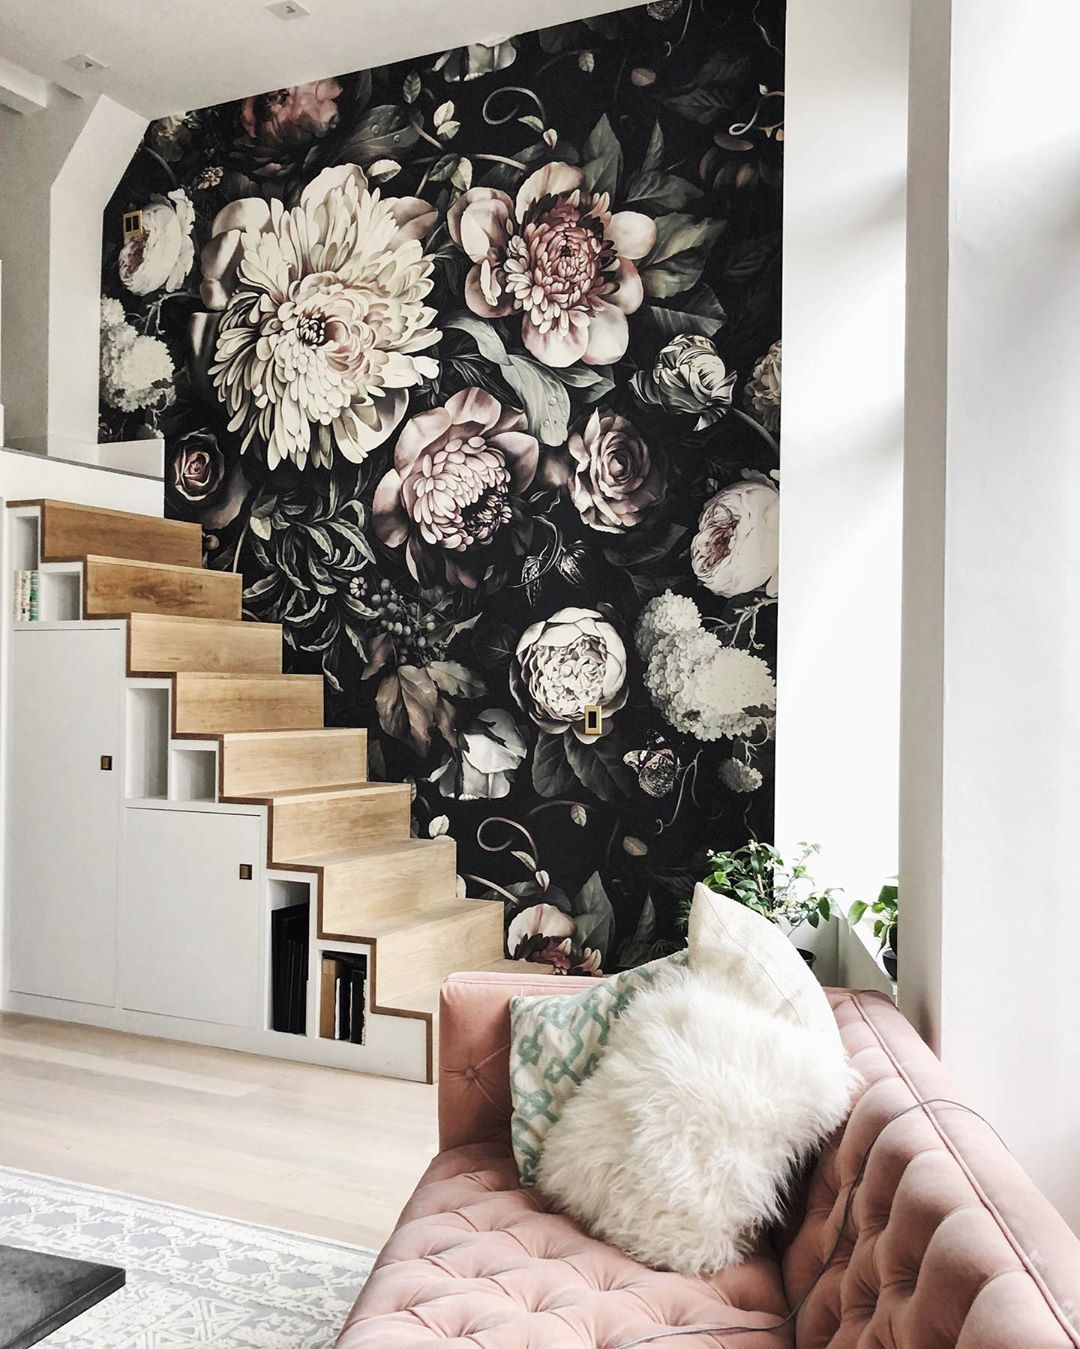 Ellie Cashman Design On Instagram I Find The Wallpaper To Be Majestic It S Botanic In A Way Floral Wallpaper Bedroom Floral Bedroom Black Floral Wallpaper